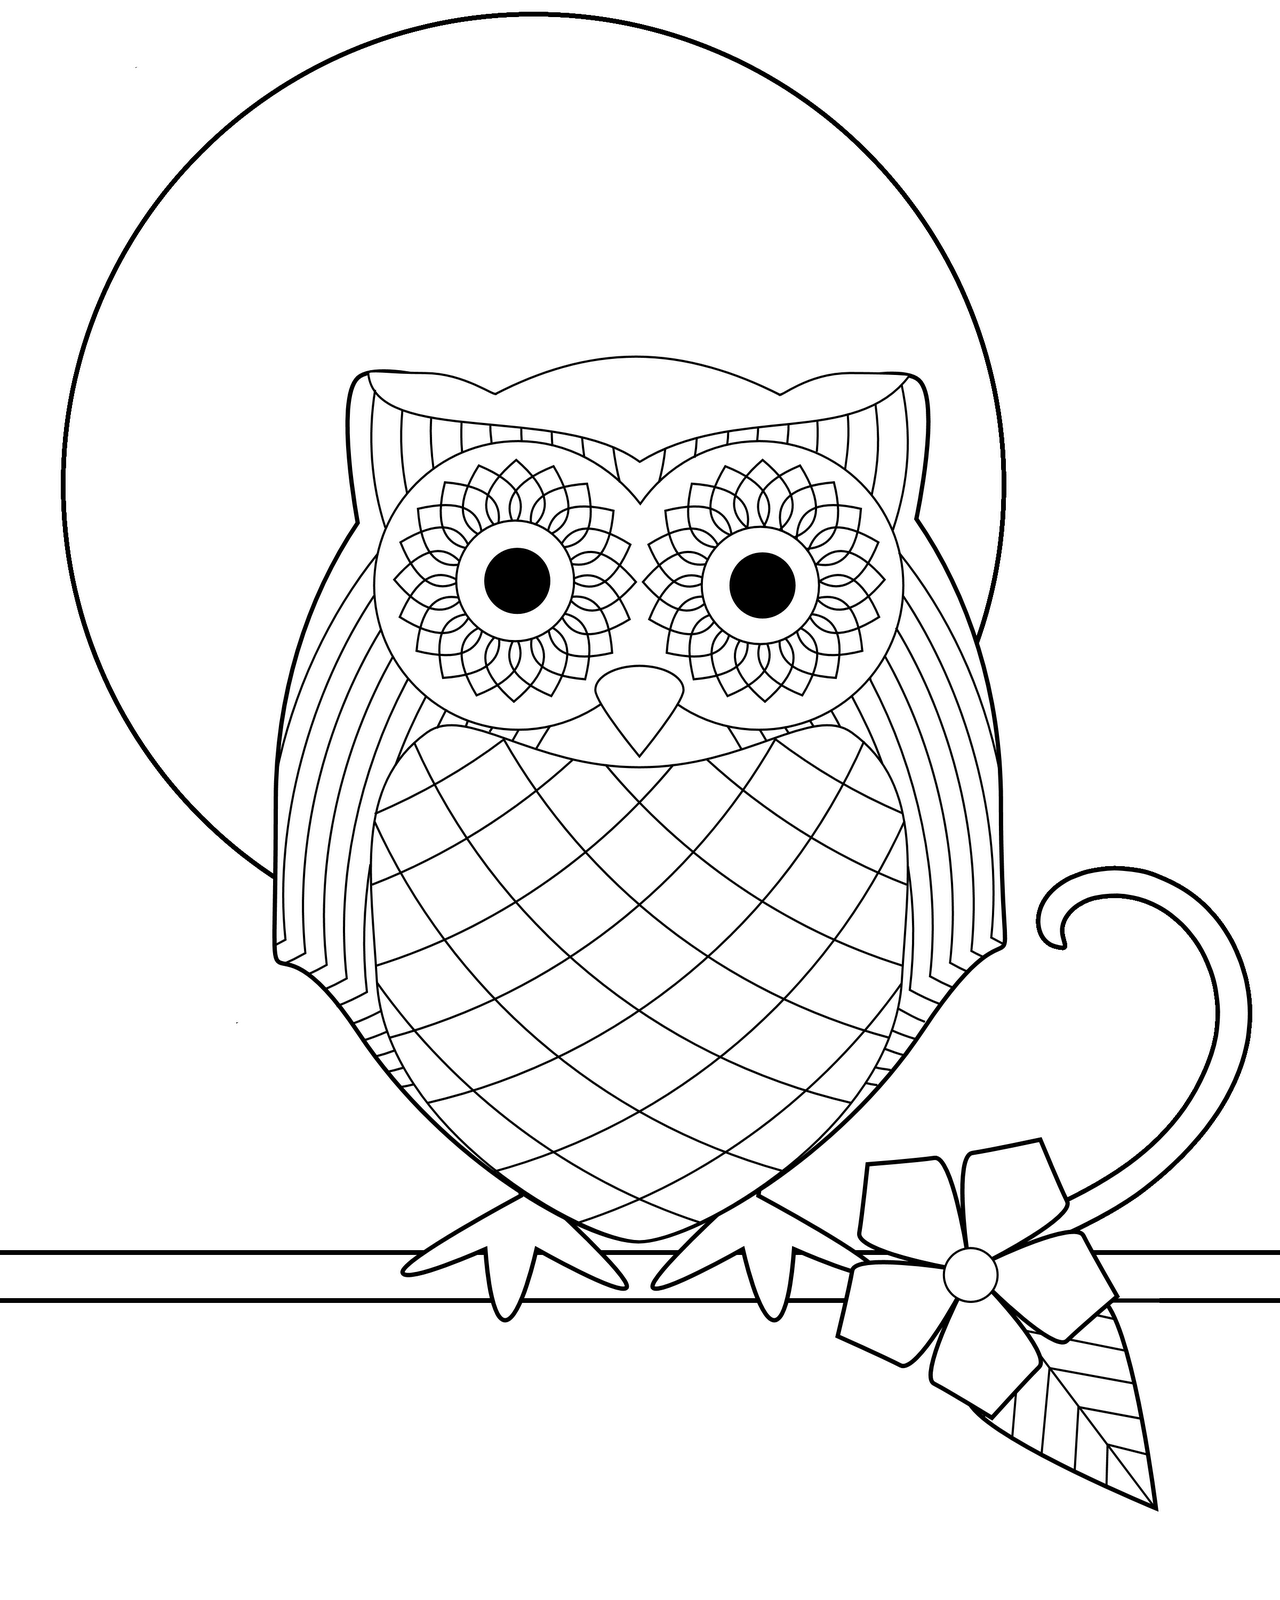 1280x1600 Pioneering Coloring Pages Of Owls Free Printable Owl For Kids